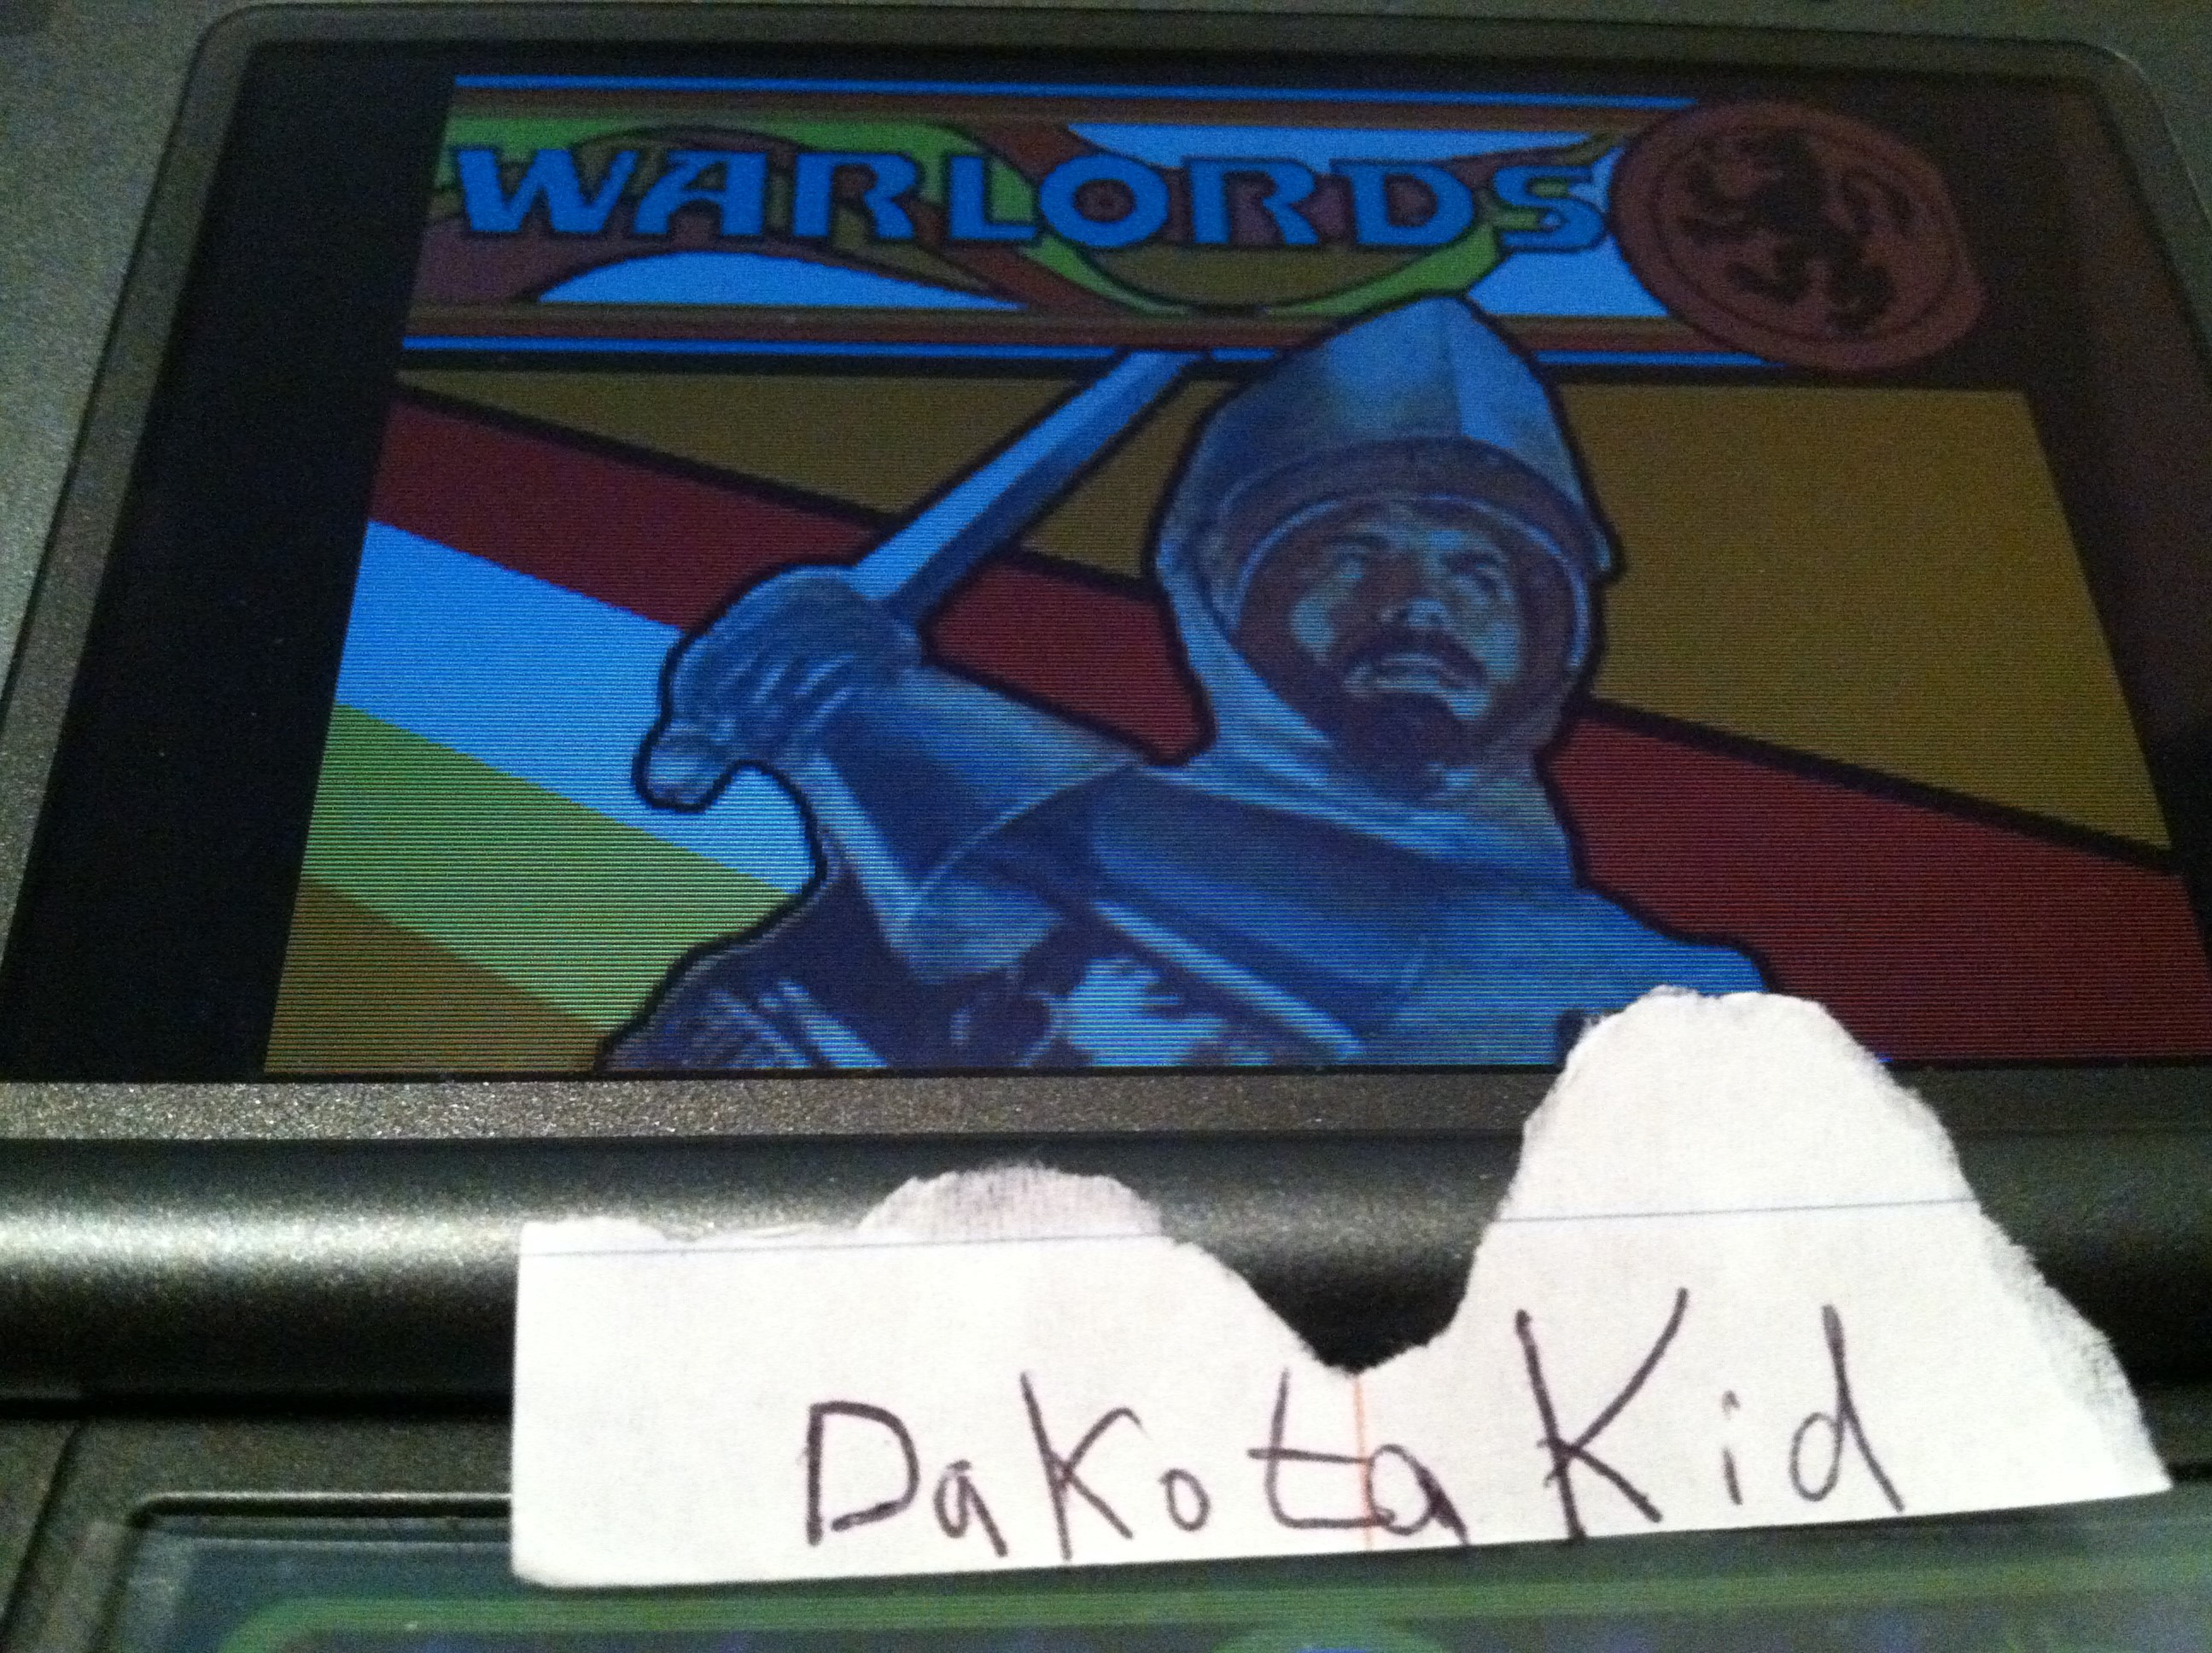 DakotaKid: Retro Atari Classics: Warlords [Arcade] (Nintendo DS) 13,625 points on 2017-11-30 17:40:38